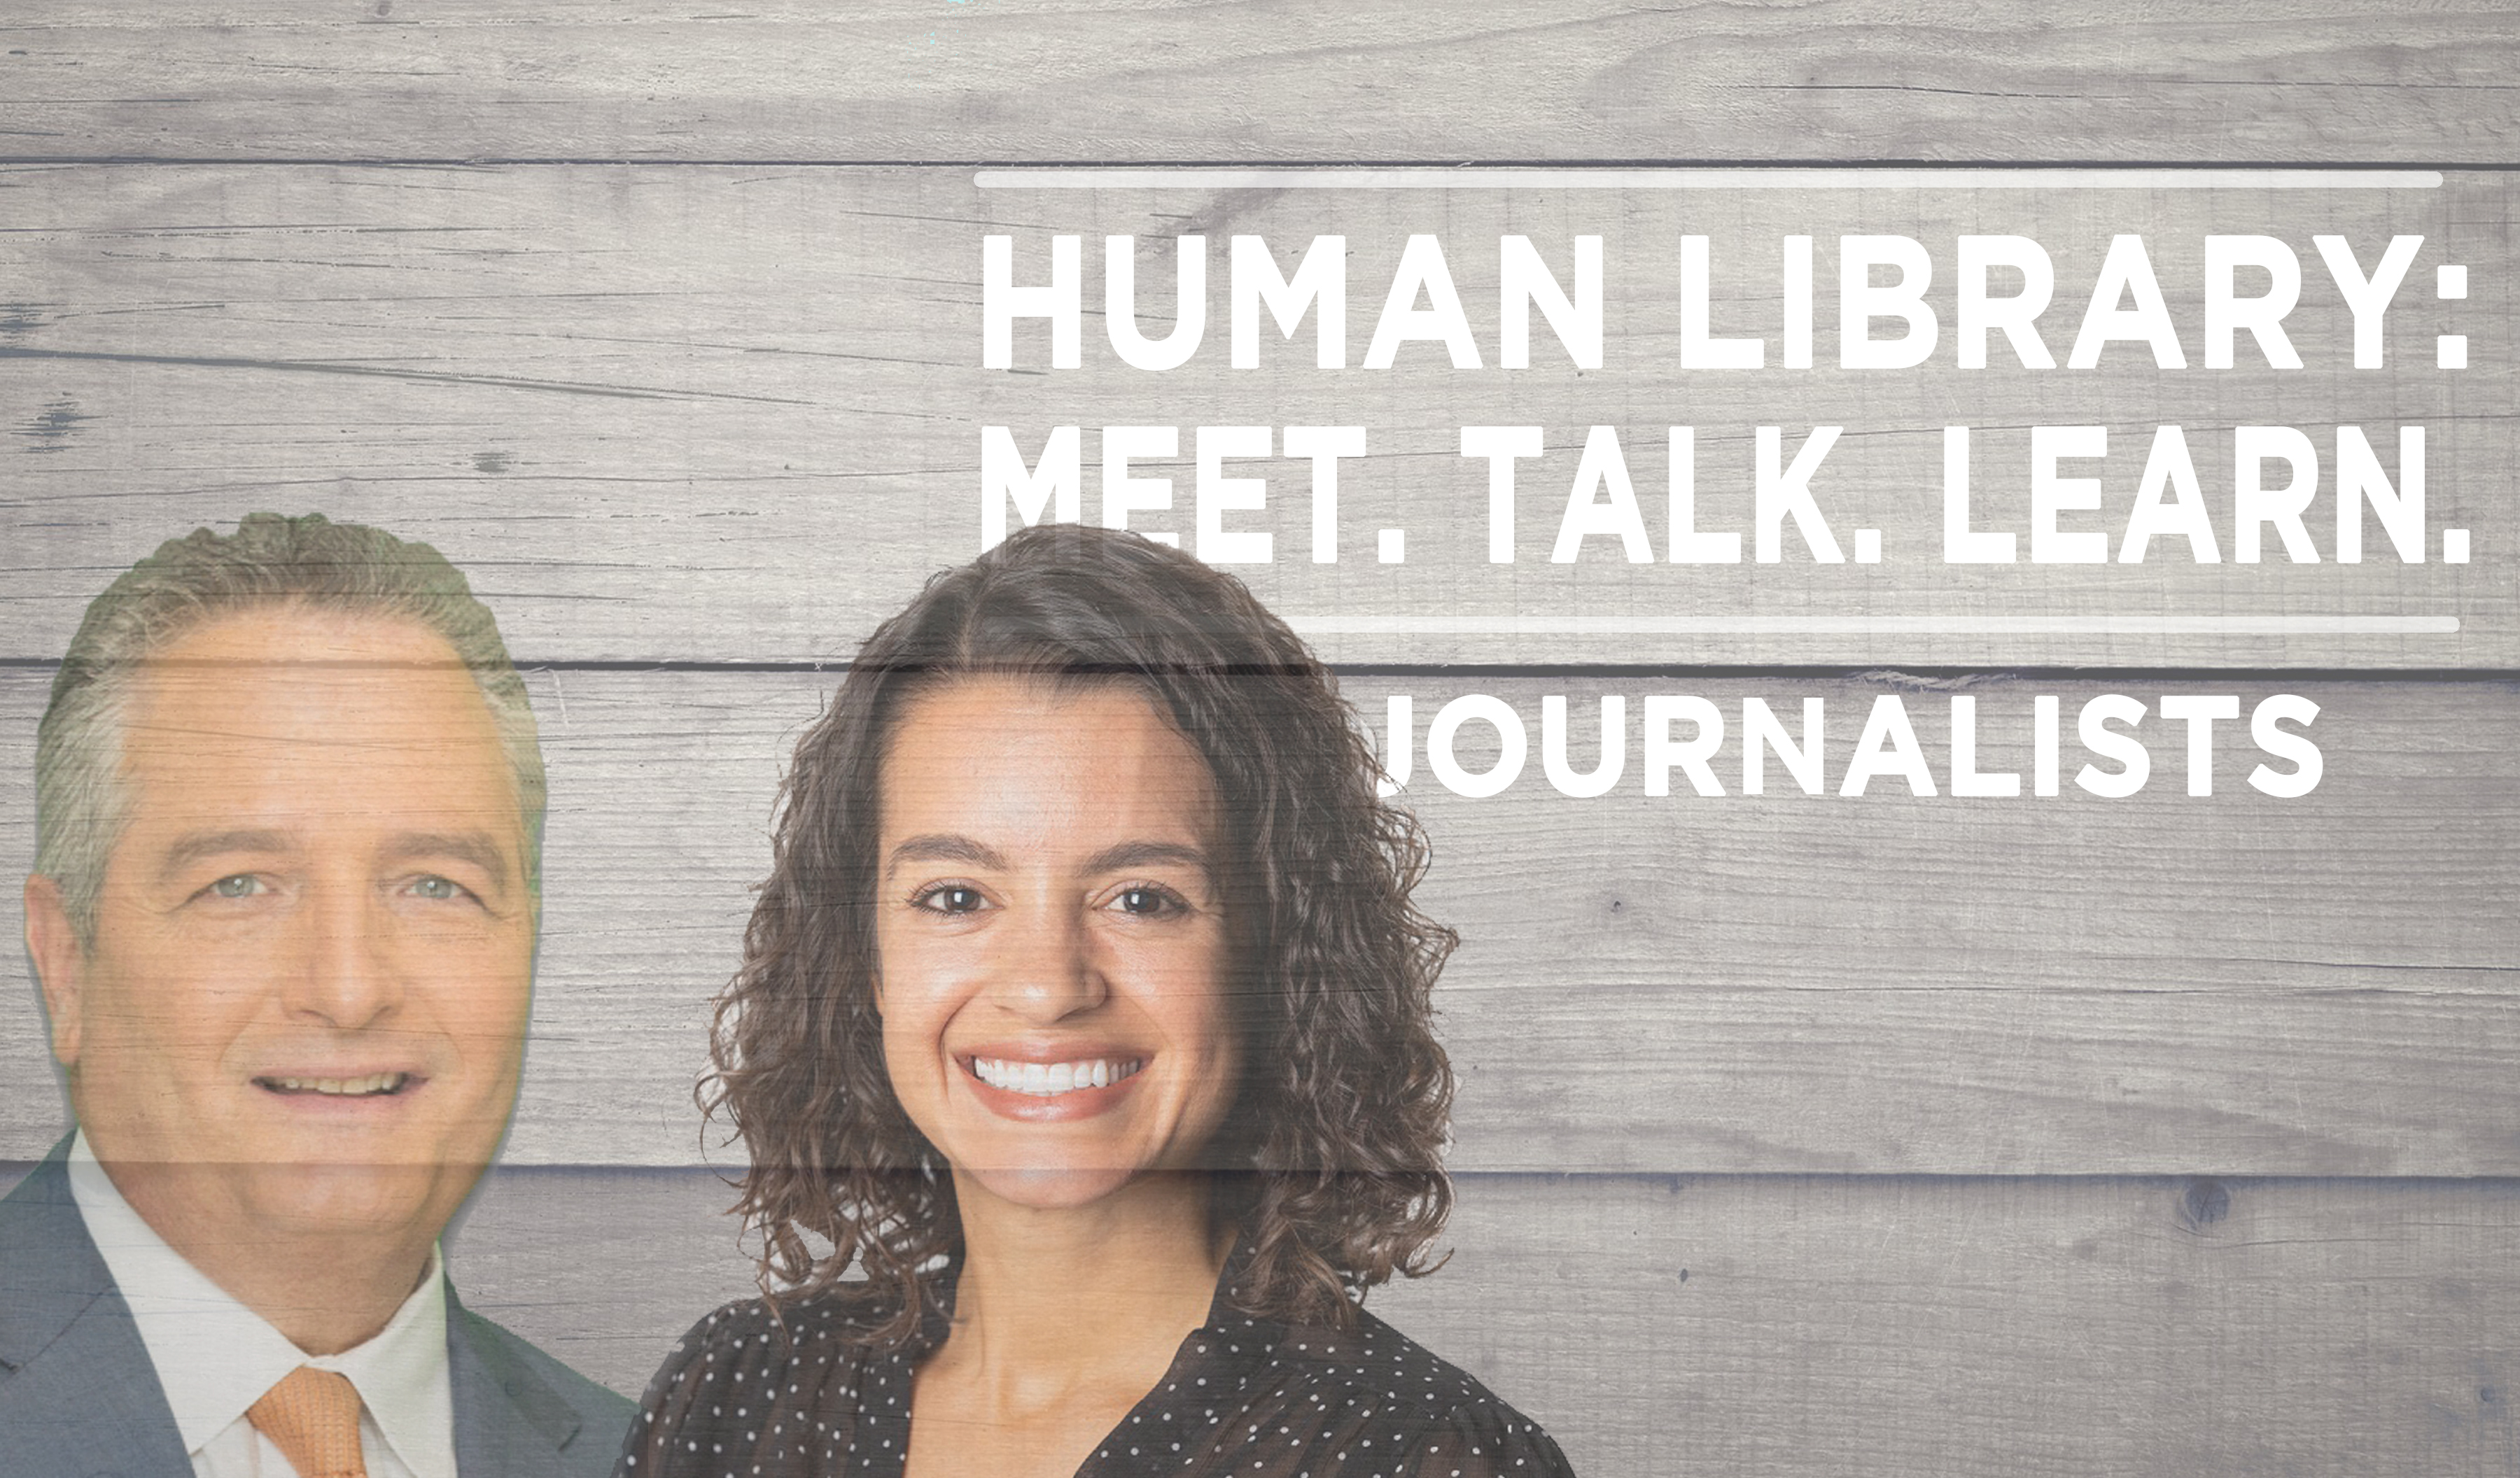 Human Library Logo2 - Journalists